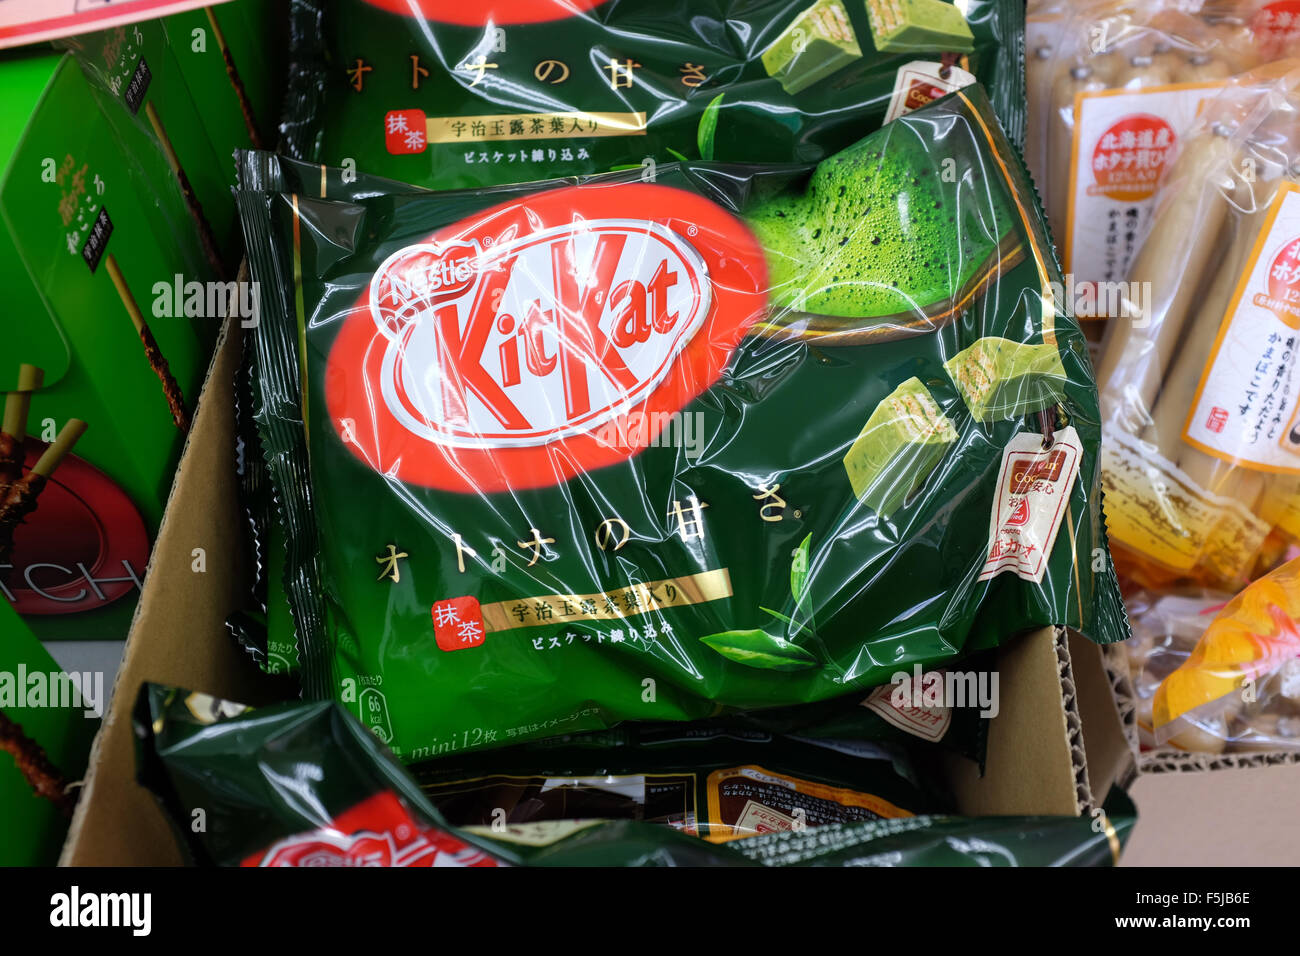 Kitkat Green Tea A Packet Of Flavoured Sold In Japan Stock Photo